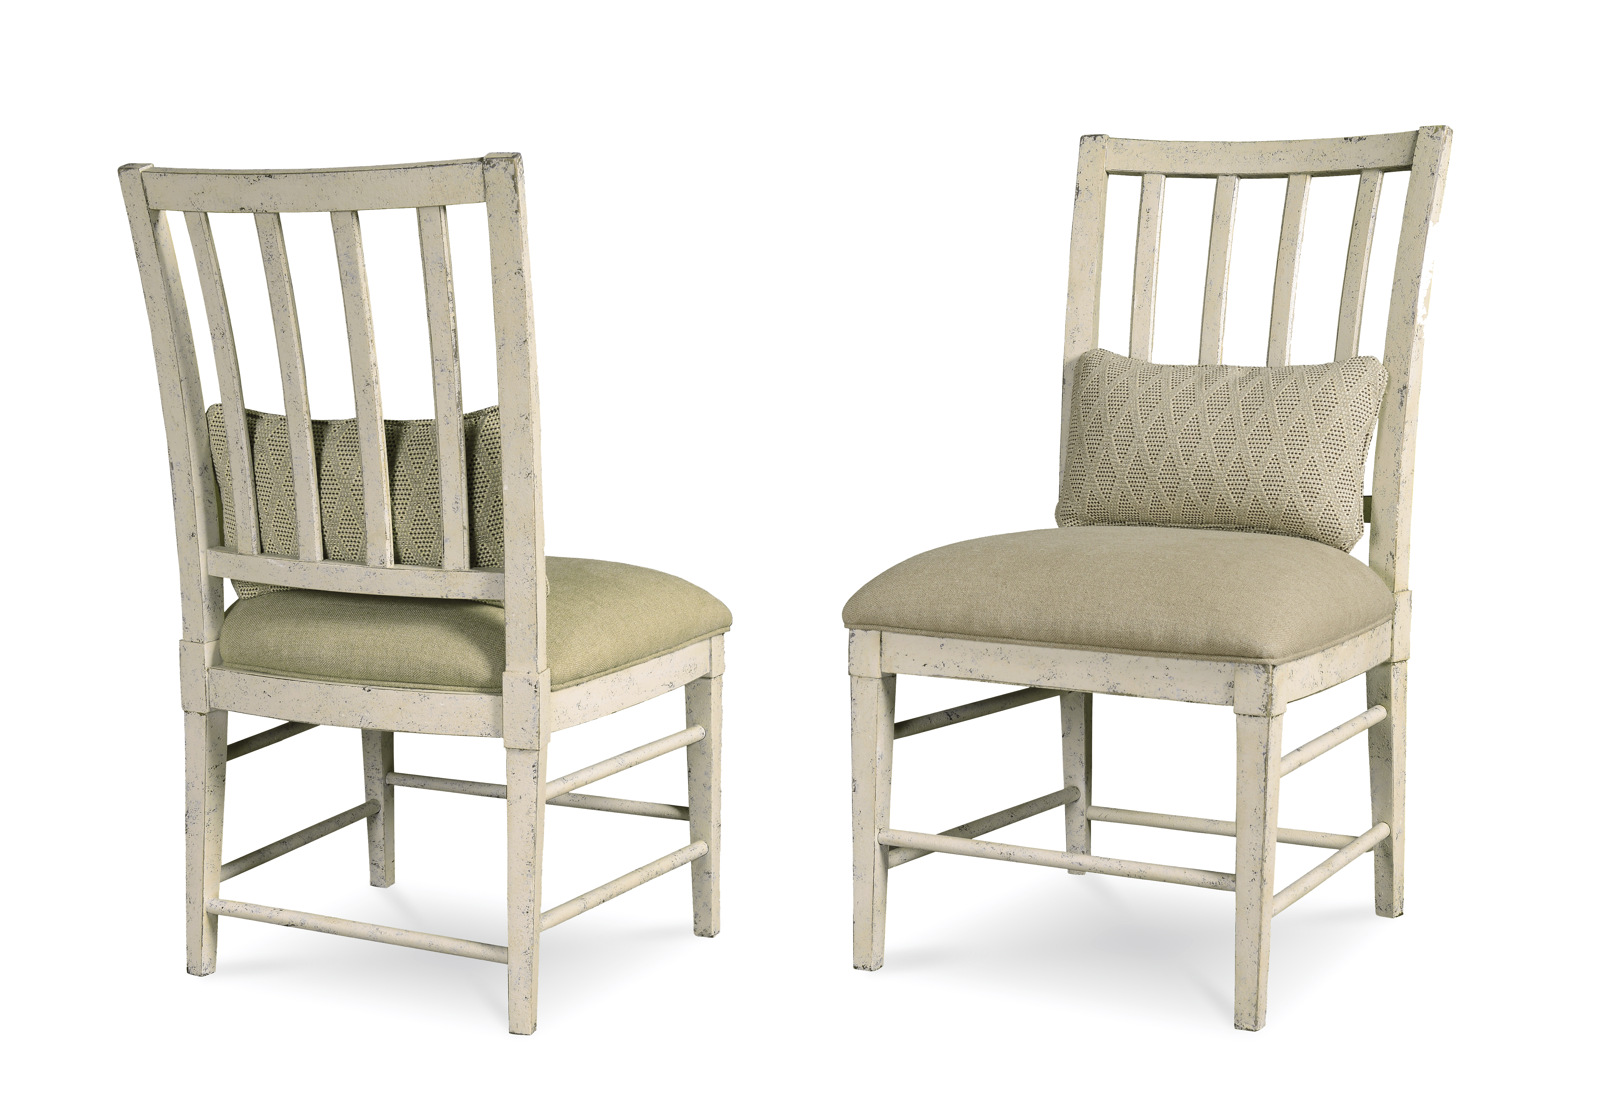 A R T Furniture Echo Park Slat Back Side Chair Set Of 2 In Antique White 212202 2617 By Dining